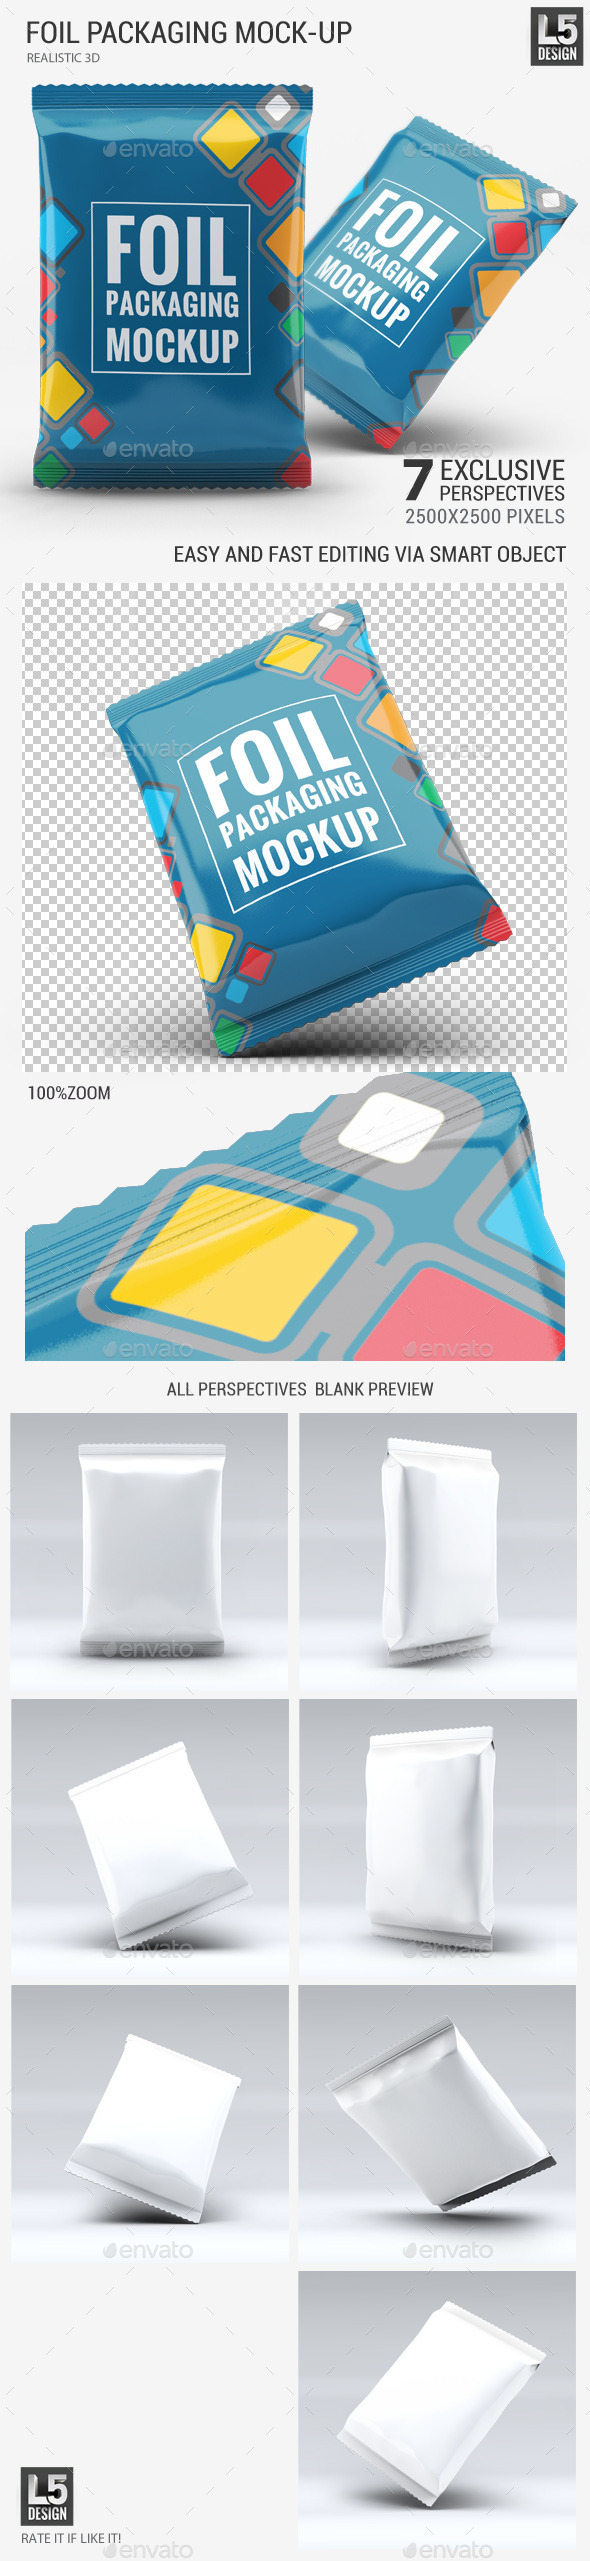 GraphicRiver Foil Packaging Mock-Up 11625656